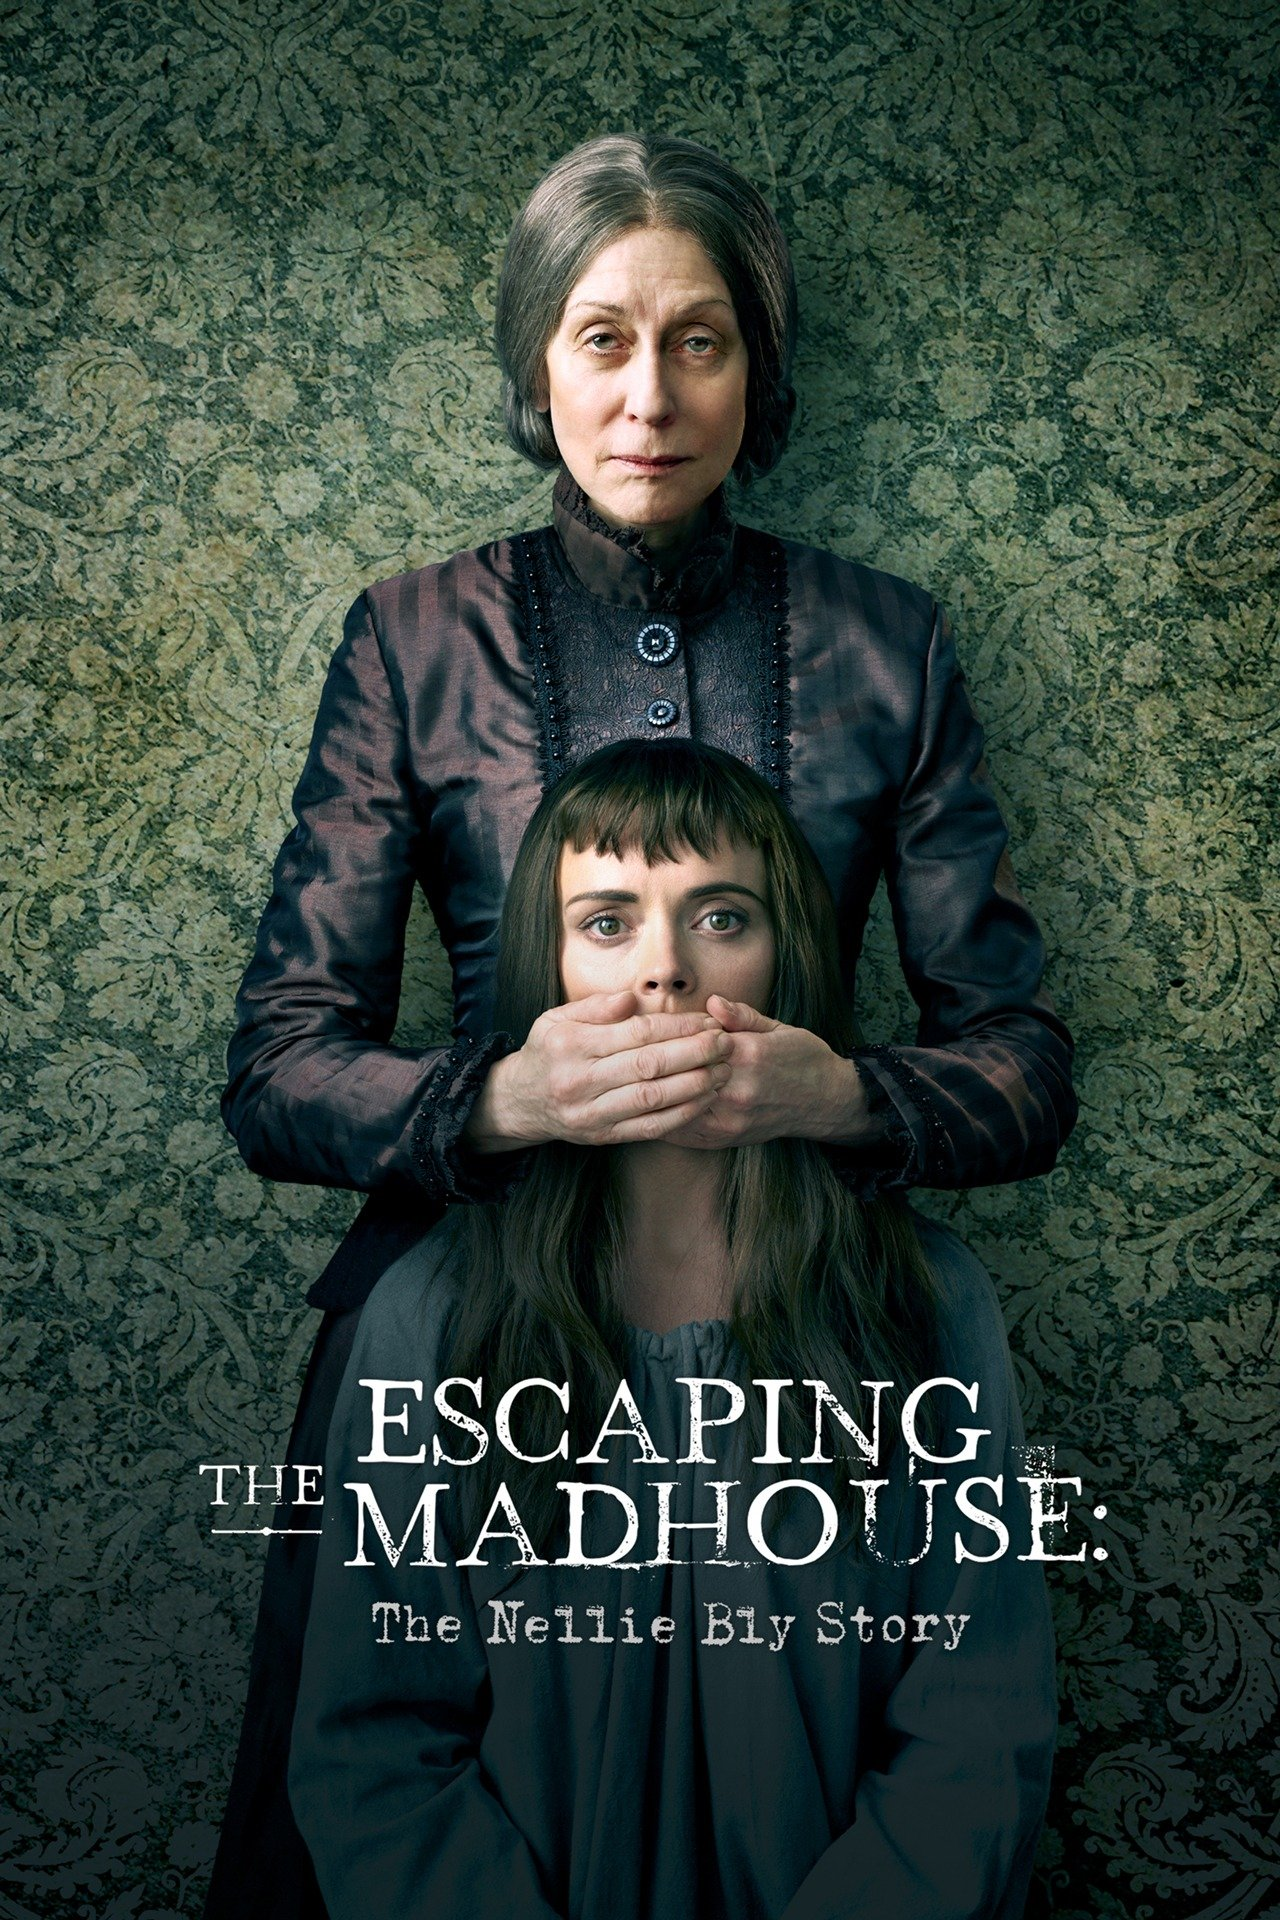 Escaping the Madhouse: The Nellie Bly Story (TV Movie 2019